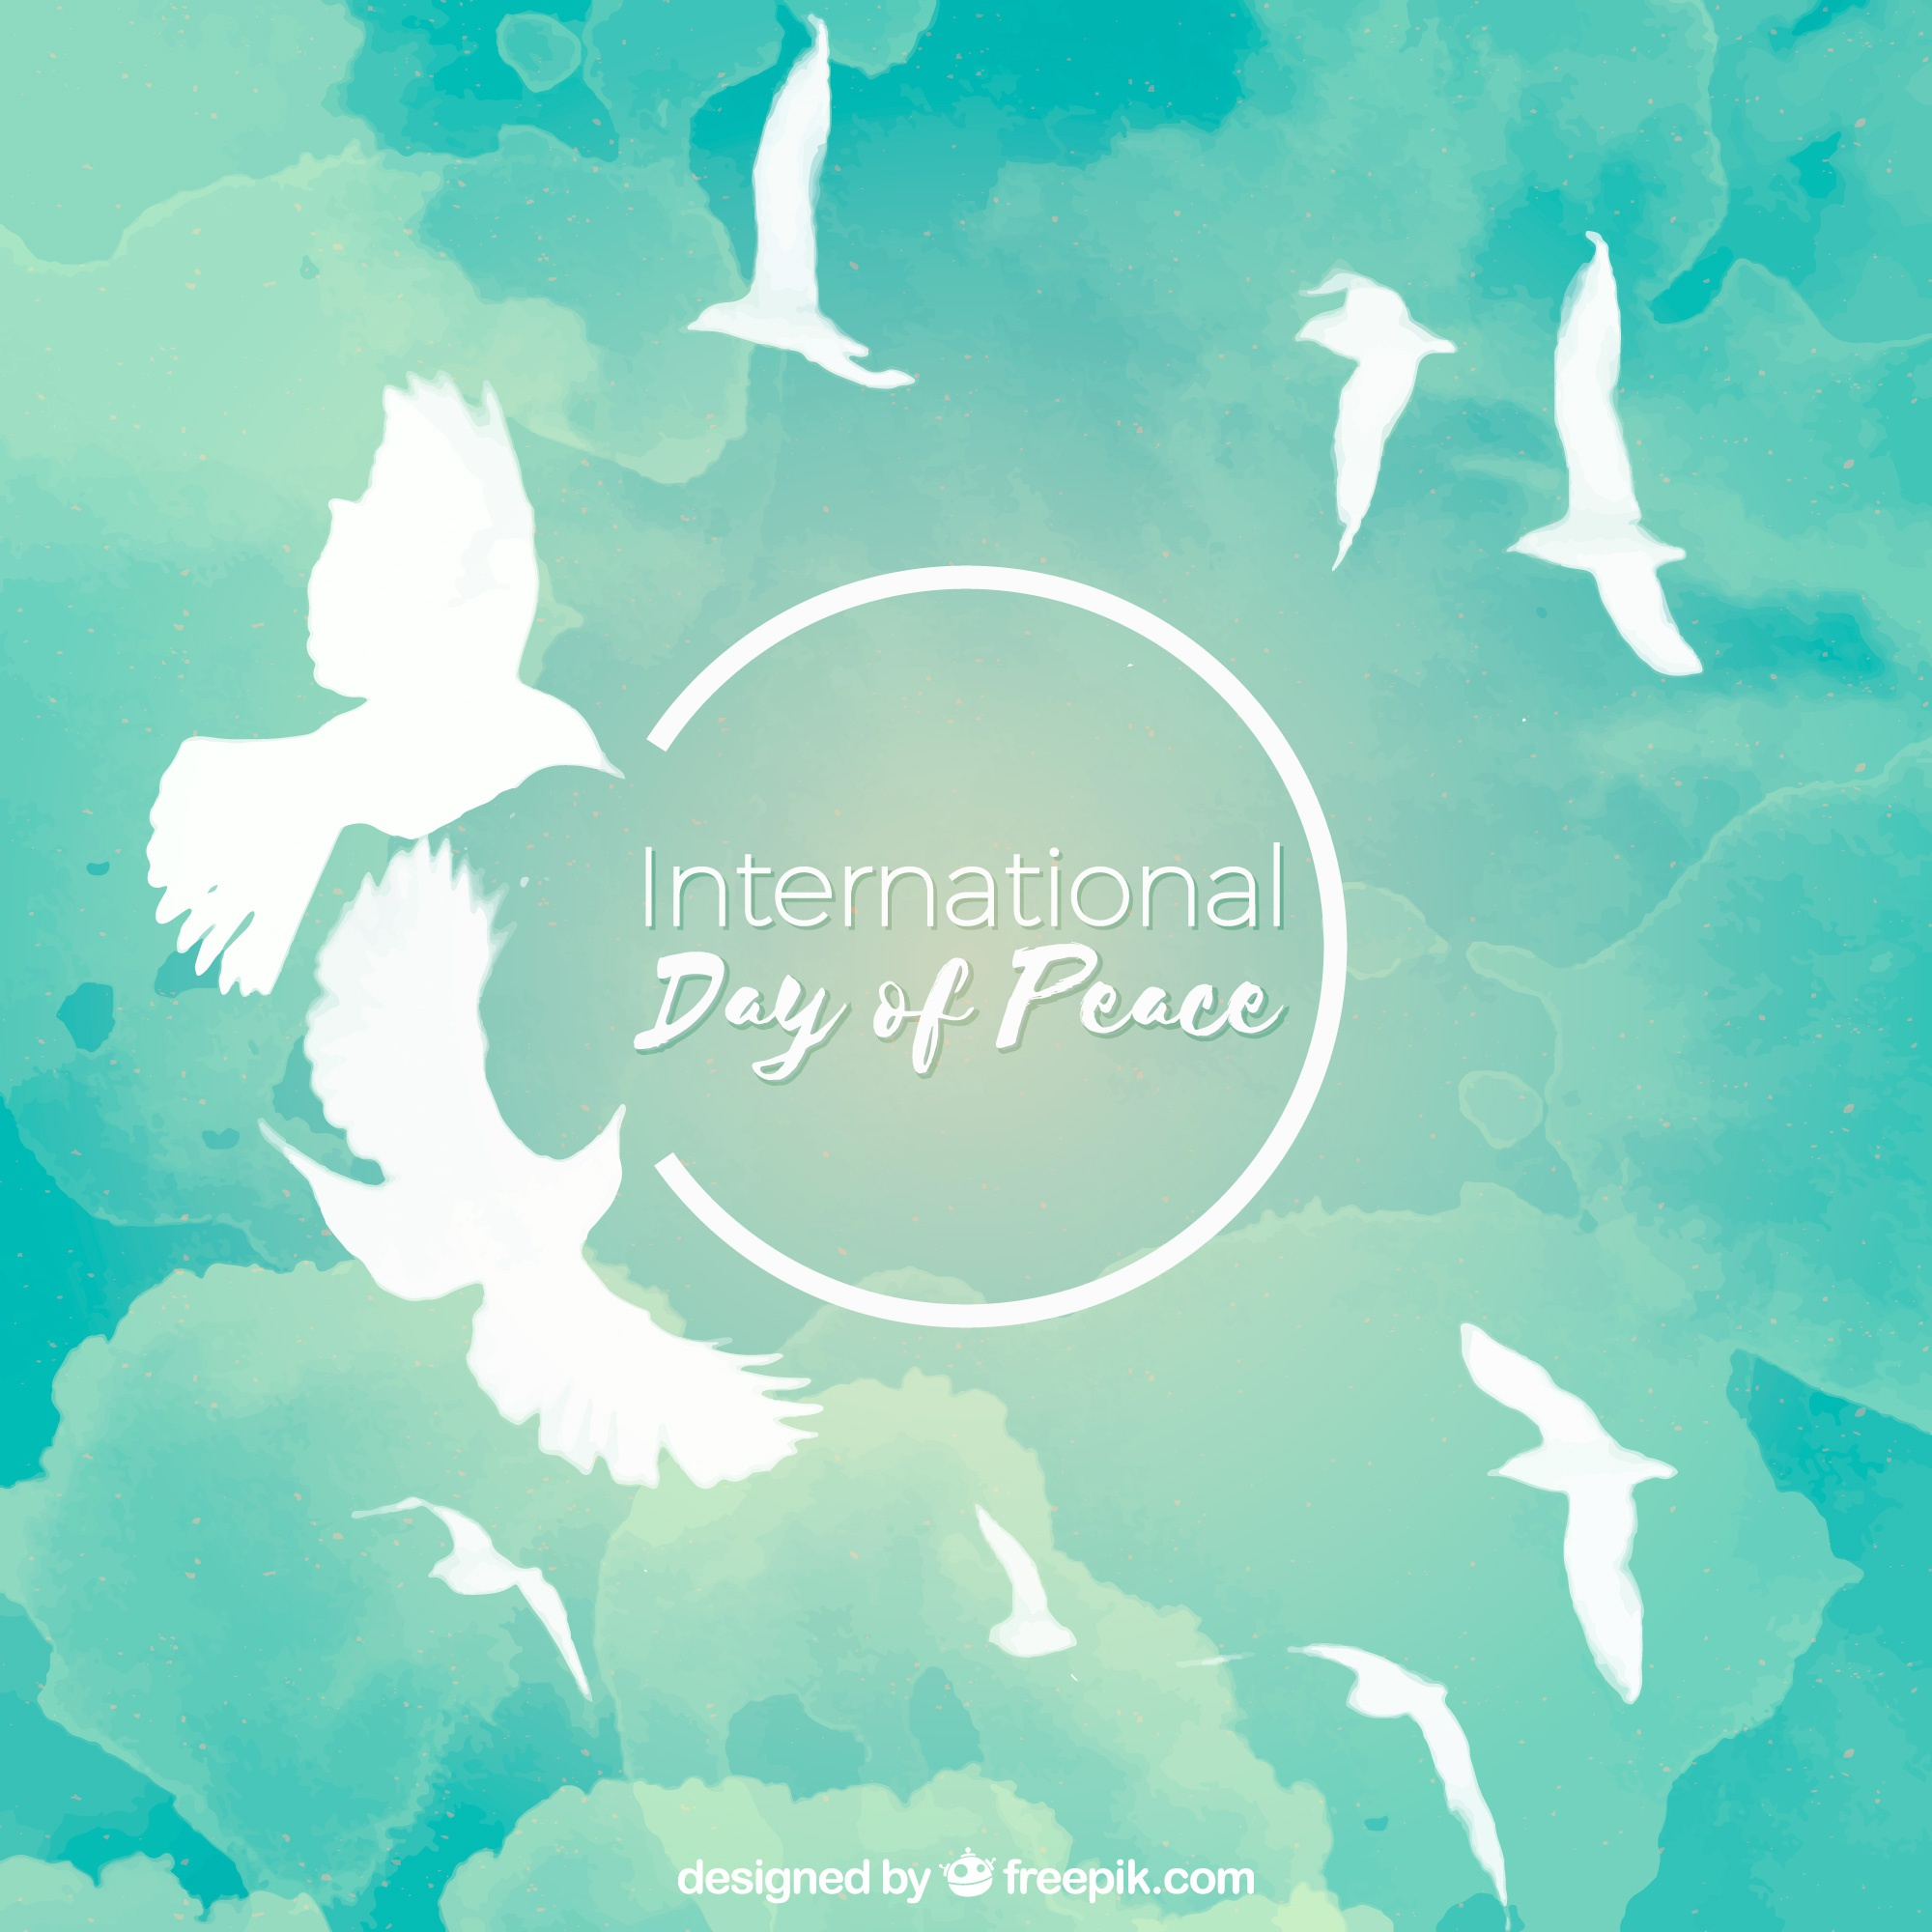 Cool watercolor doves flying in the sky